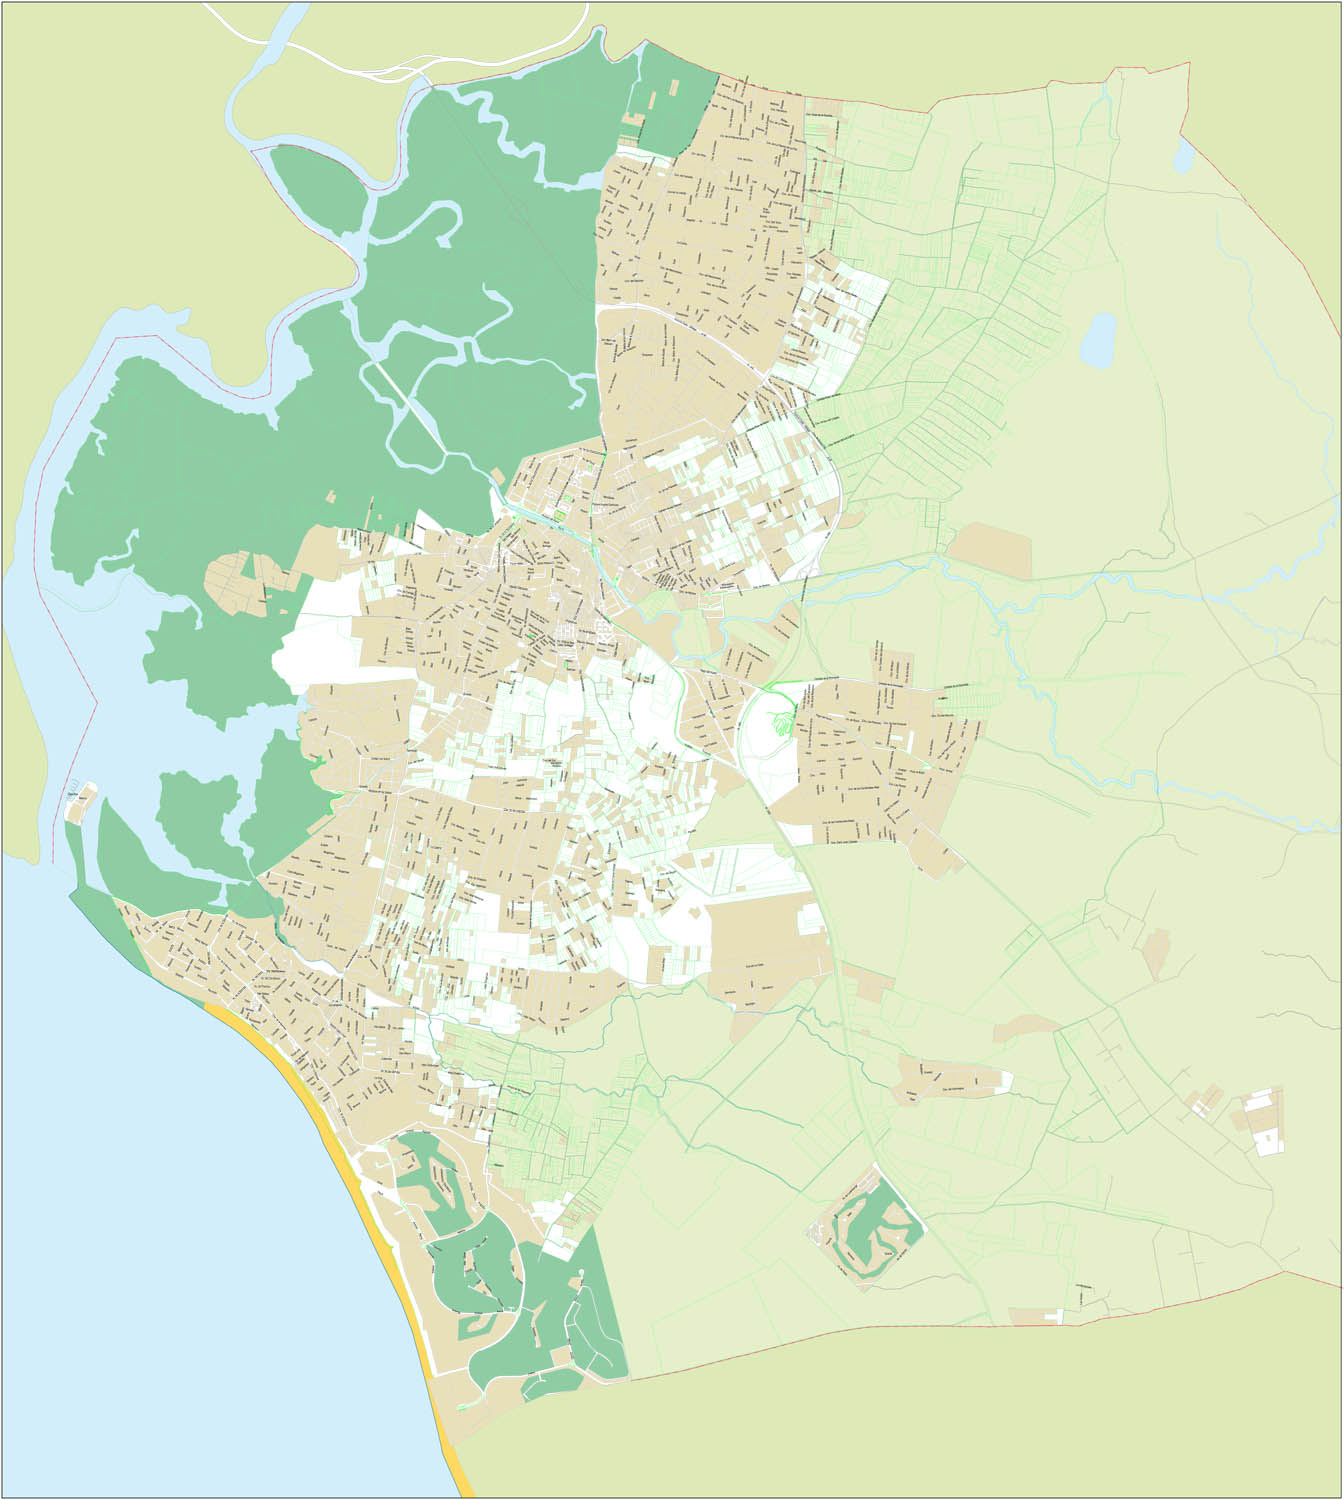 Chiclana de la Frontera - city map